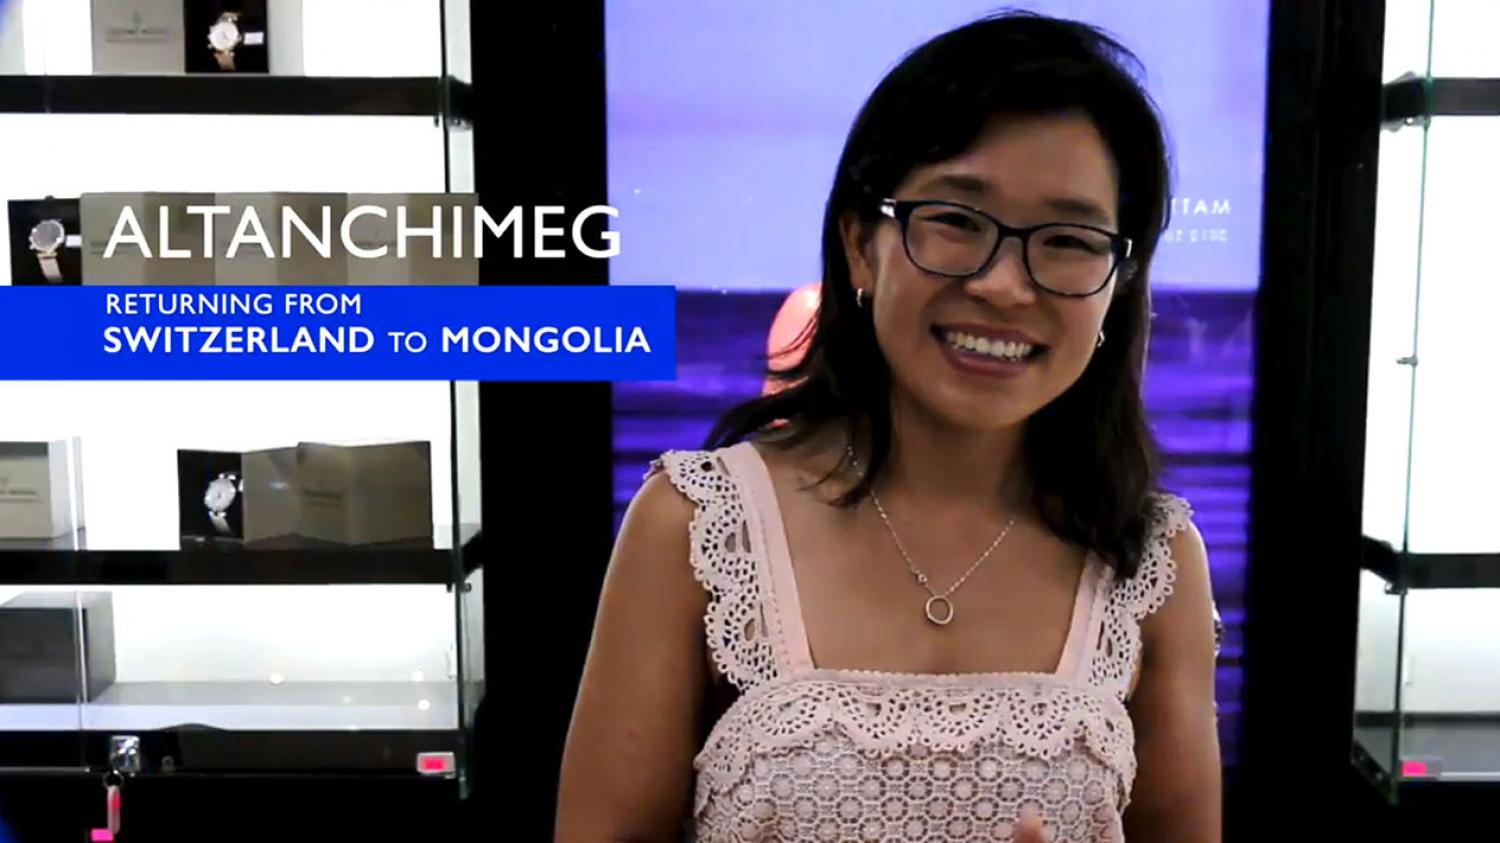 The story of Altanchimeg, Mongolia